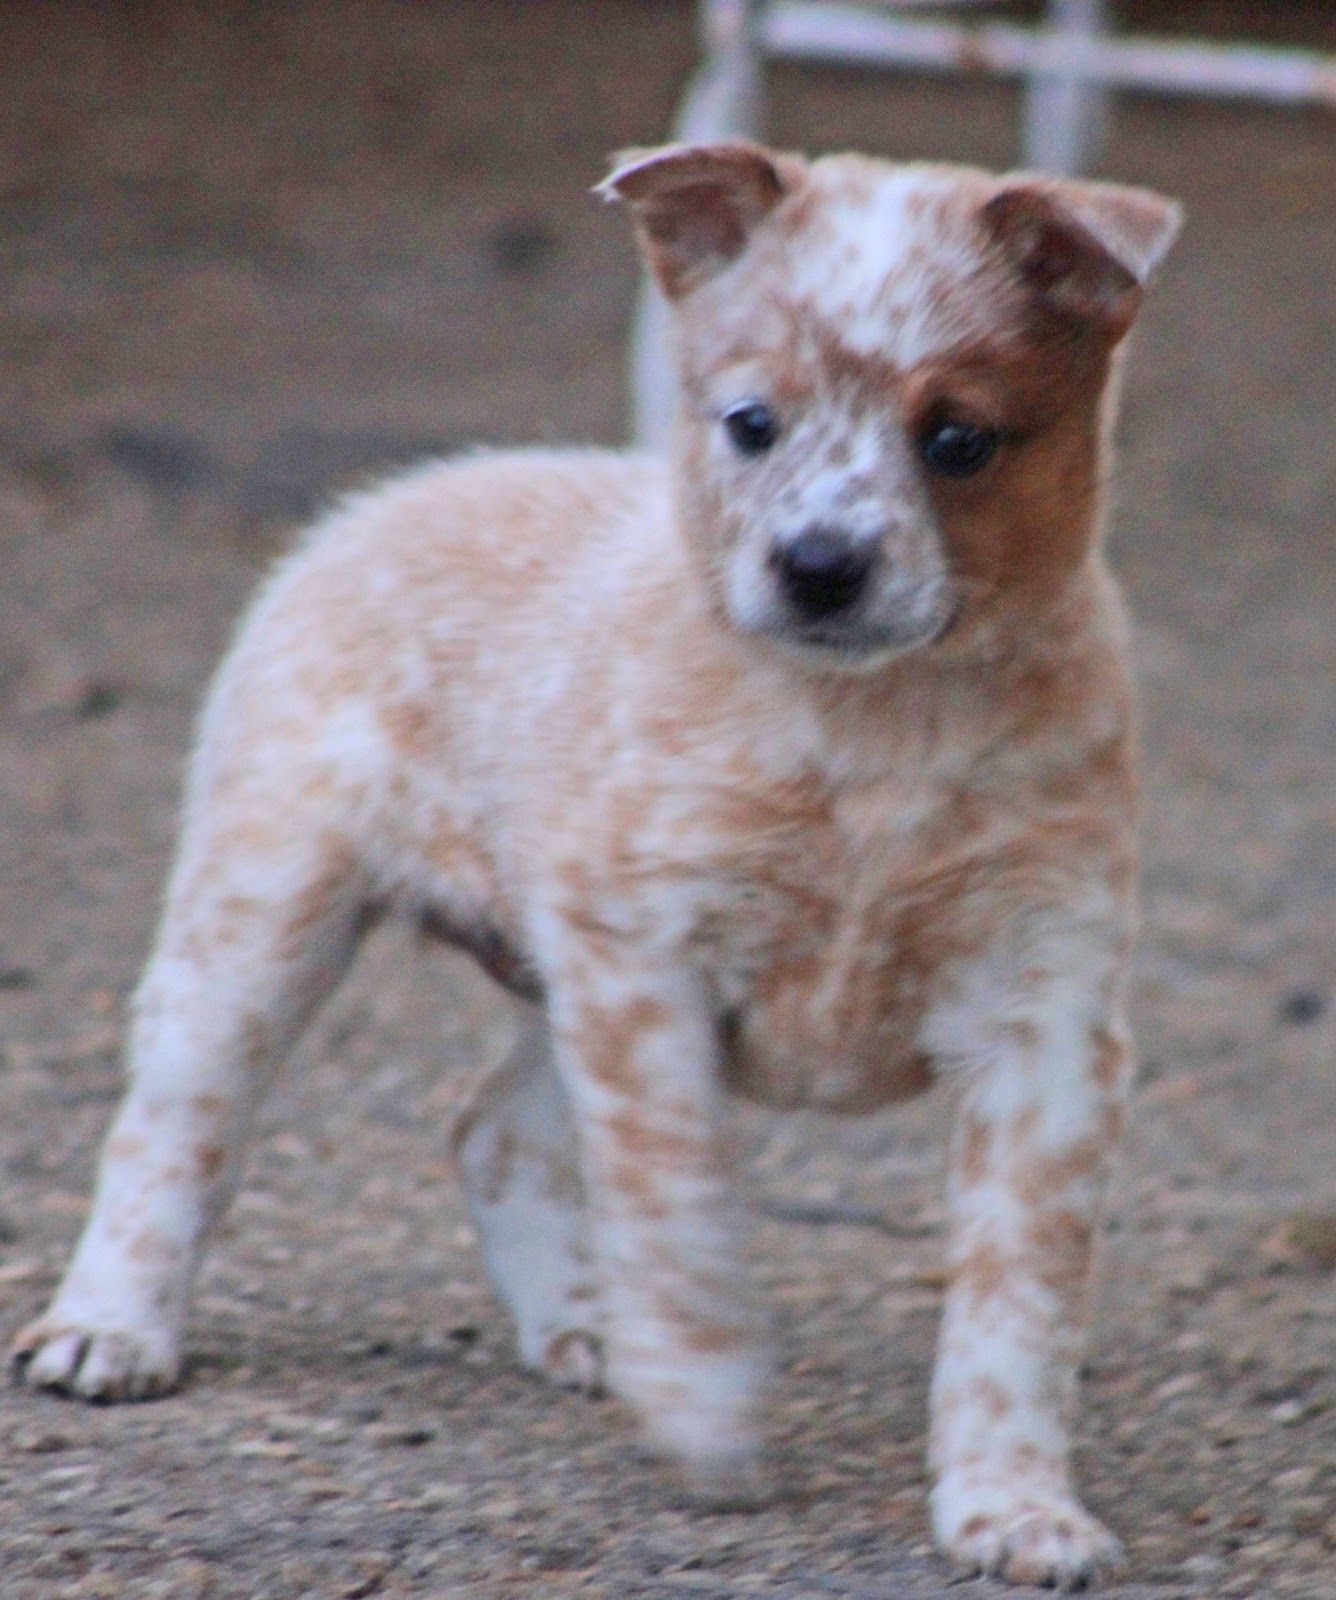 Queensland Heeler Puppy Dogs For Sale In Ventura County Southern California Adorable Hardest Update To D Heeler Puppies Red Heeler Puppies Aussie Cattle Dog